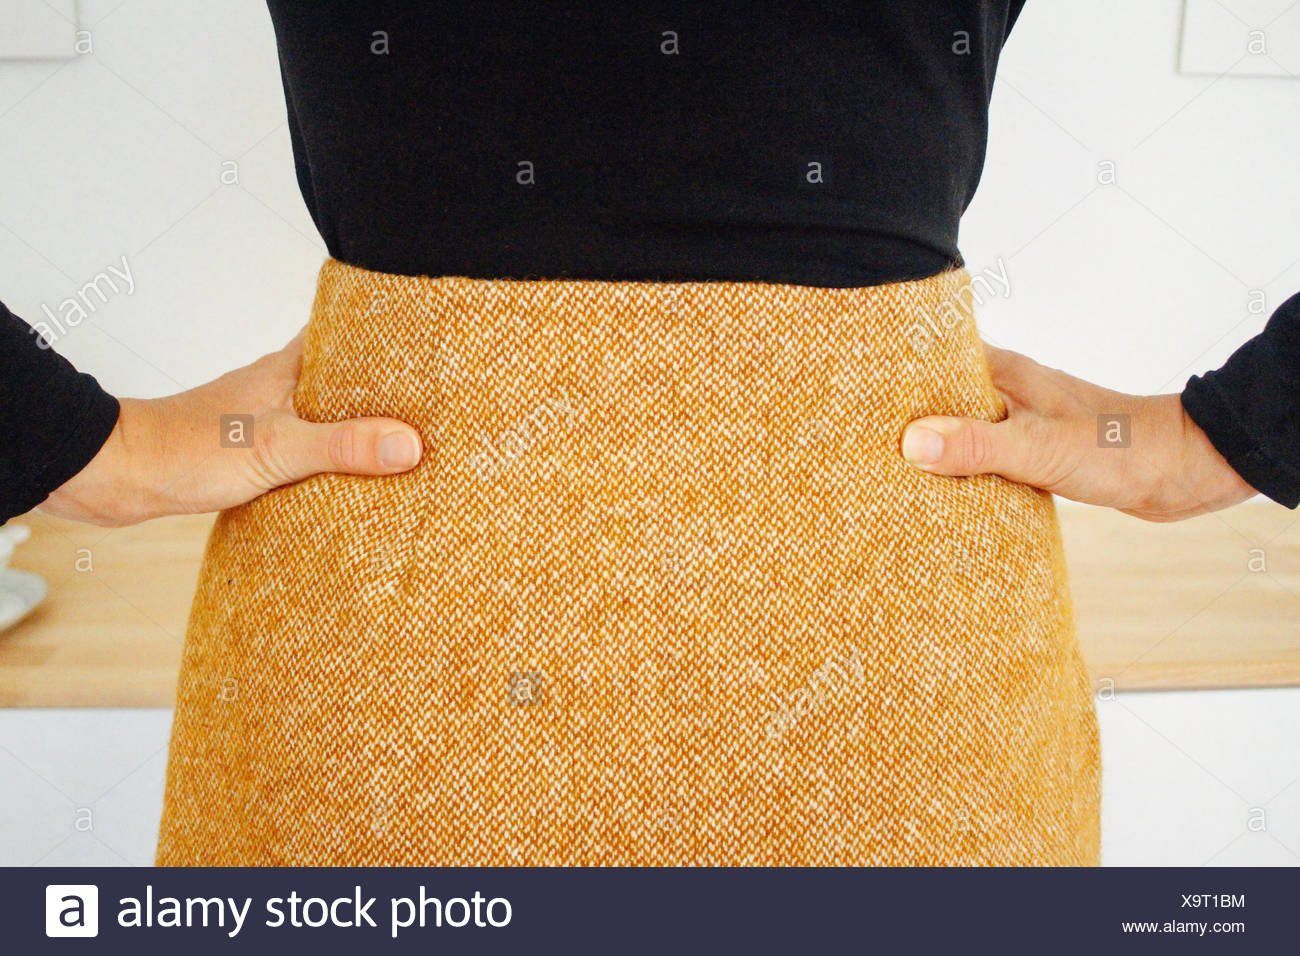 Rear View Of Woman With Hands On Hip - Stock Image